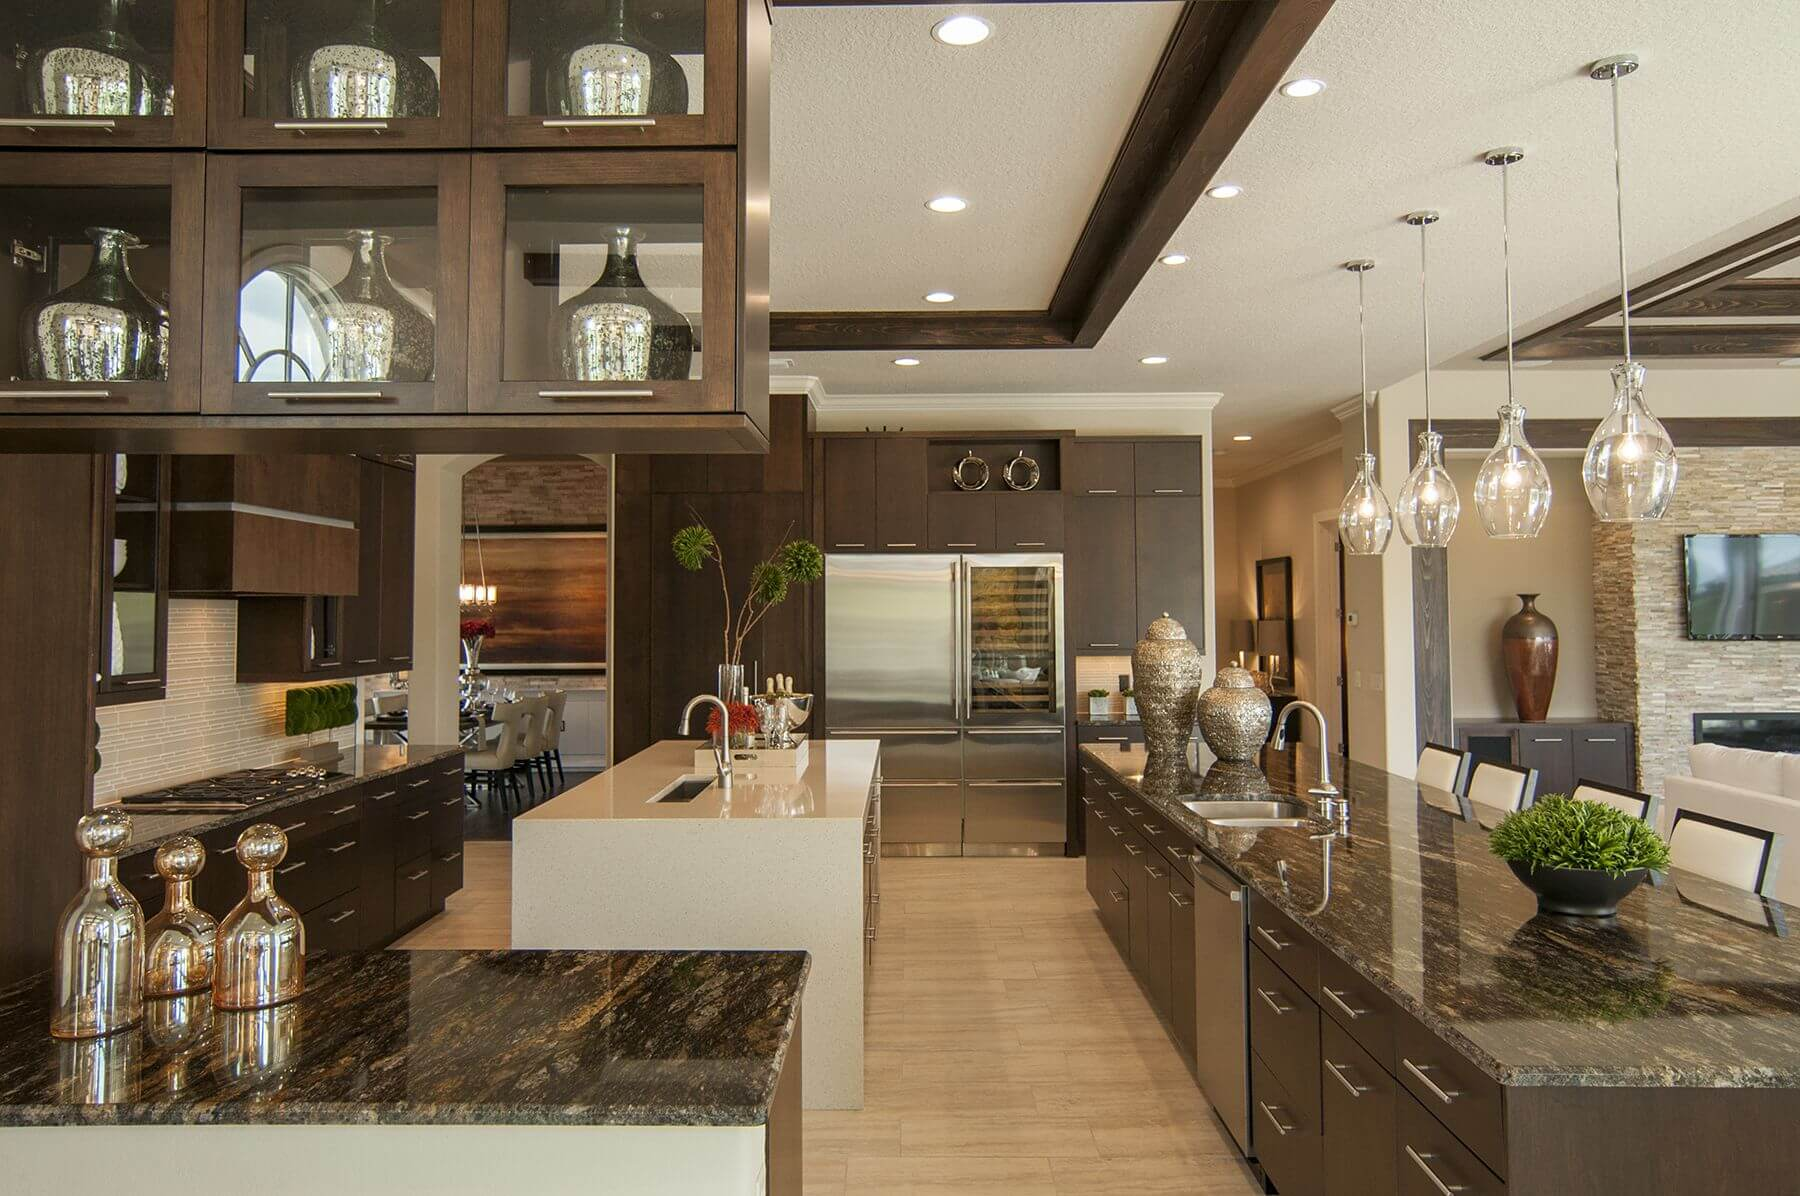 White Kitchen Appliances With Wood Cabinets 52 dark kitchens with dark wood and black kitchen cabinets